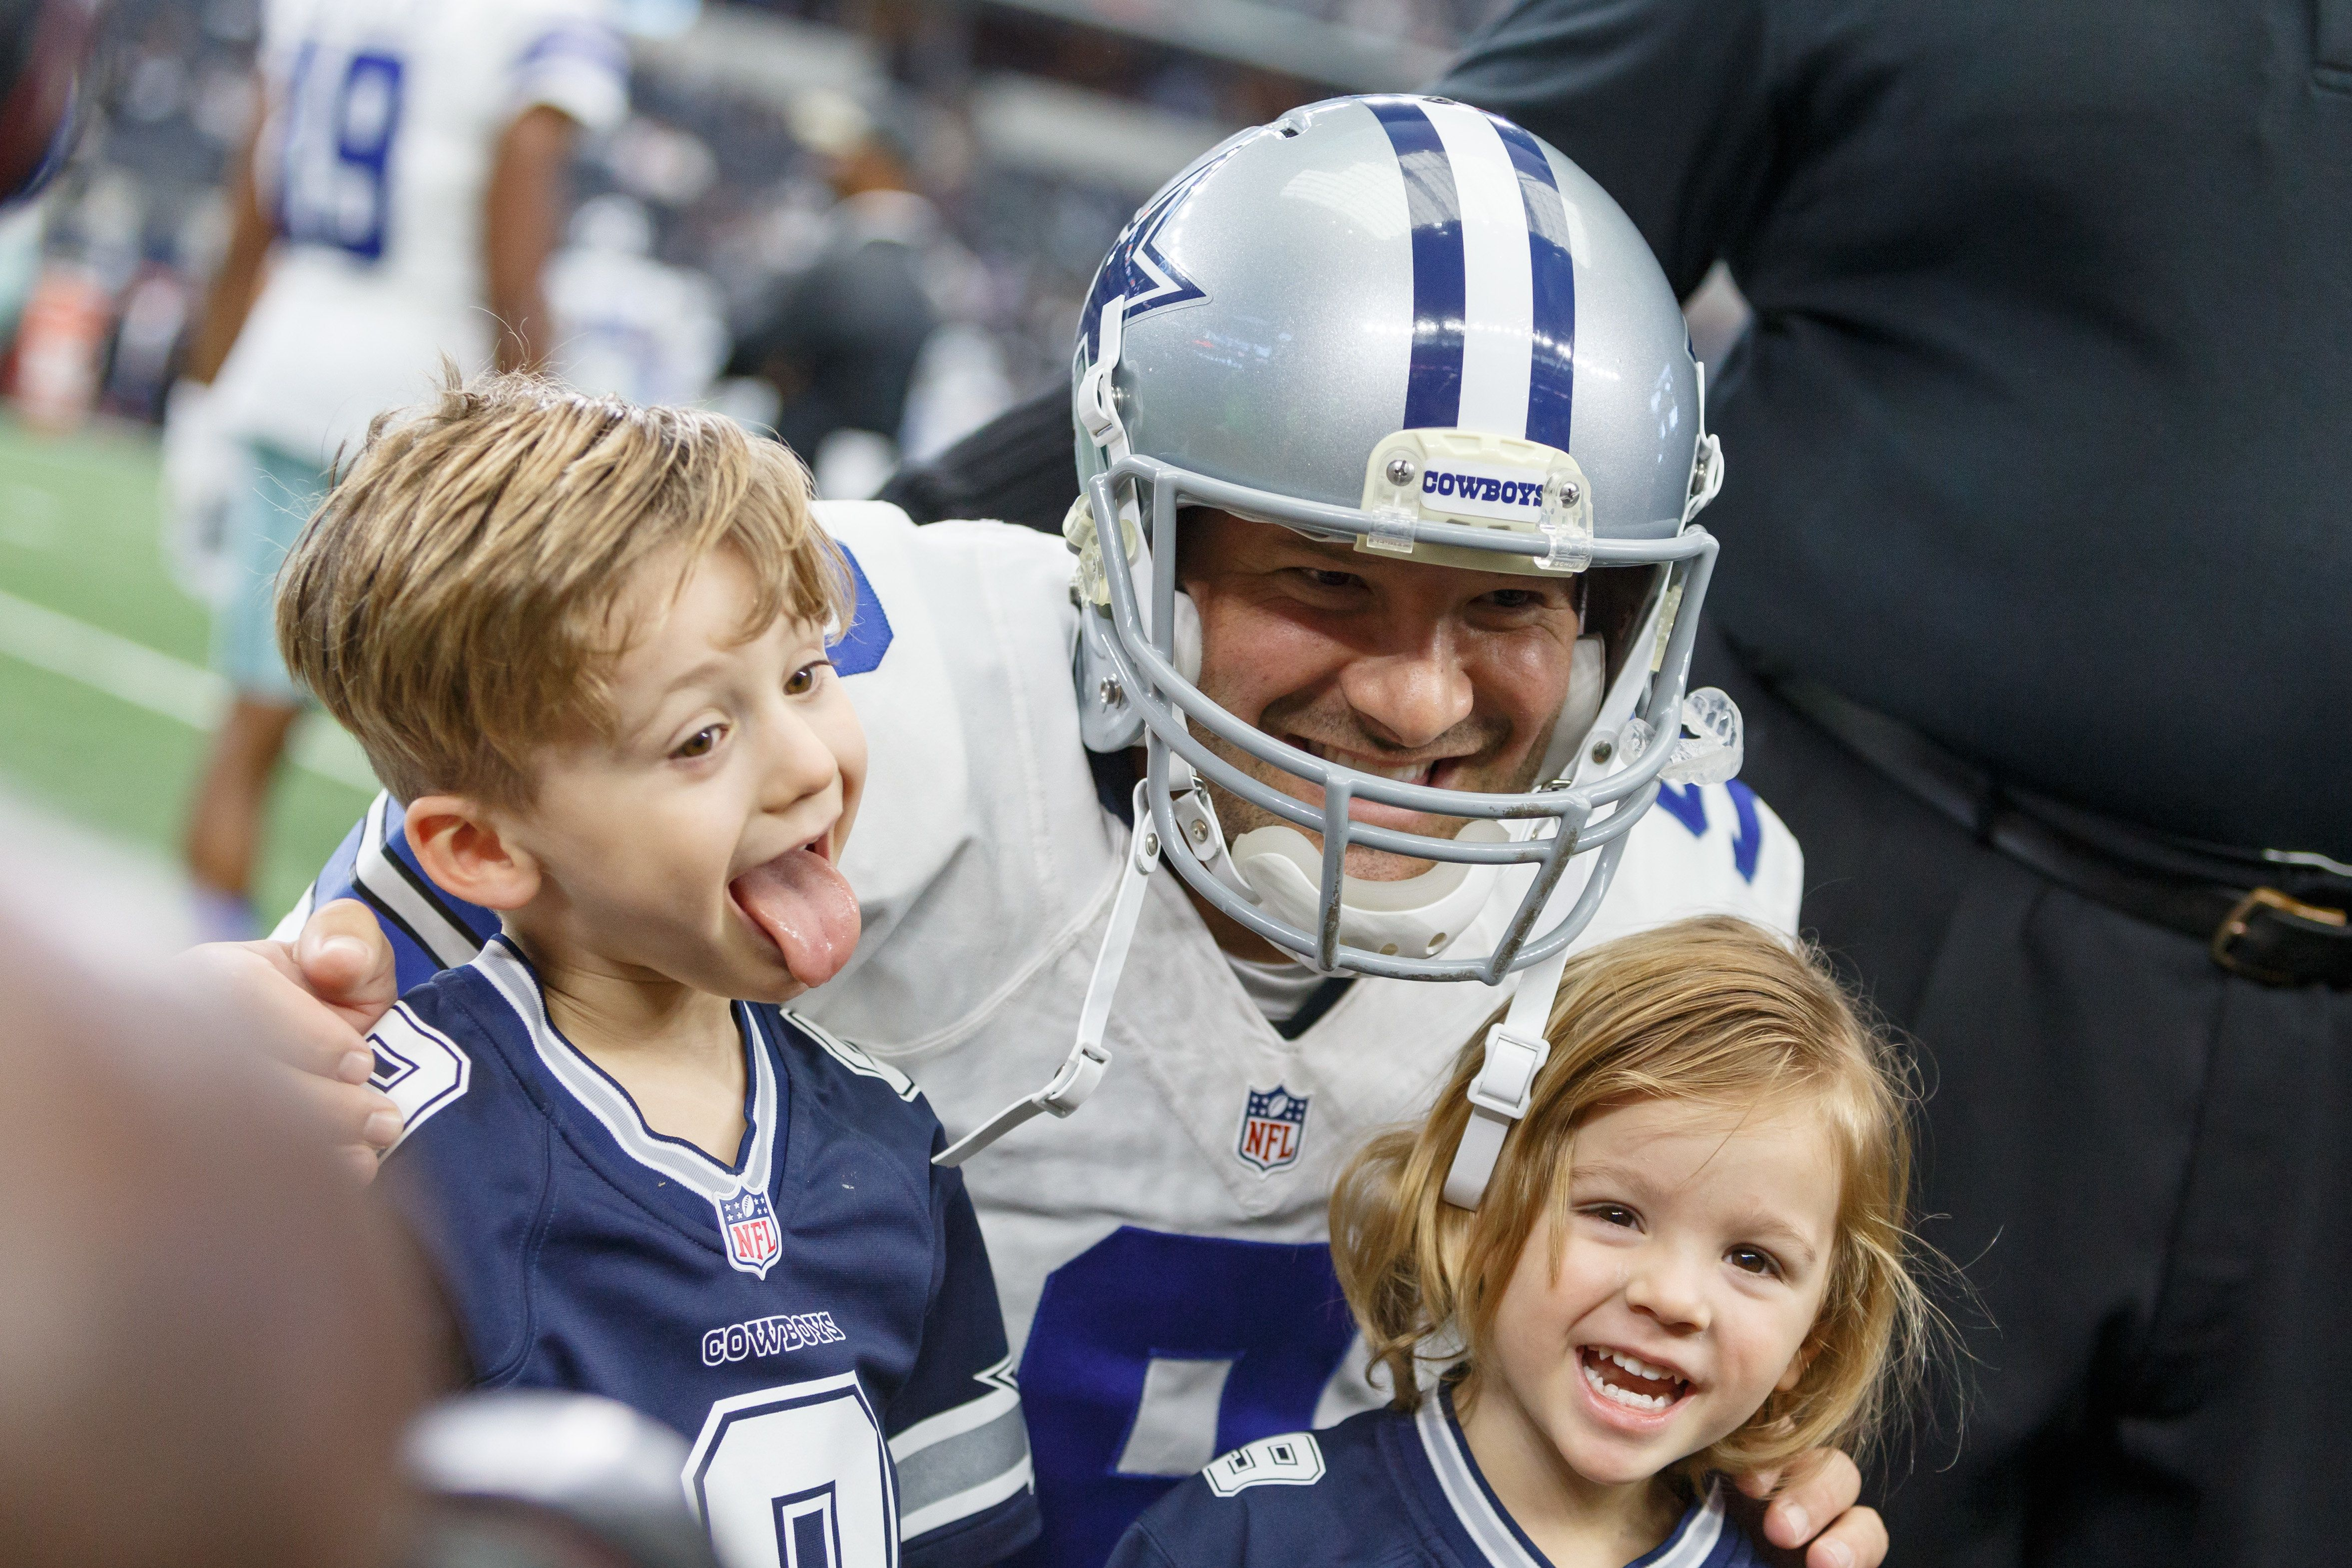 ARLINGTON, TX - NOVEMBER 20: Dallas Cowboys Quarterback Tony Romo (9) poses with his kids prior to the NFL game between the Baltimore Ravens and Dallas Cowboys on November 20, 2016, at AT&T Stadium in Arlington, TX.  (Photo by Andrew Dieb/Icon Sportswire via Getty Images)